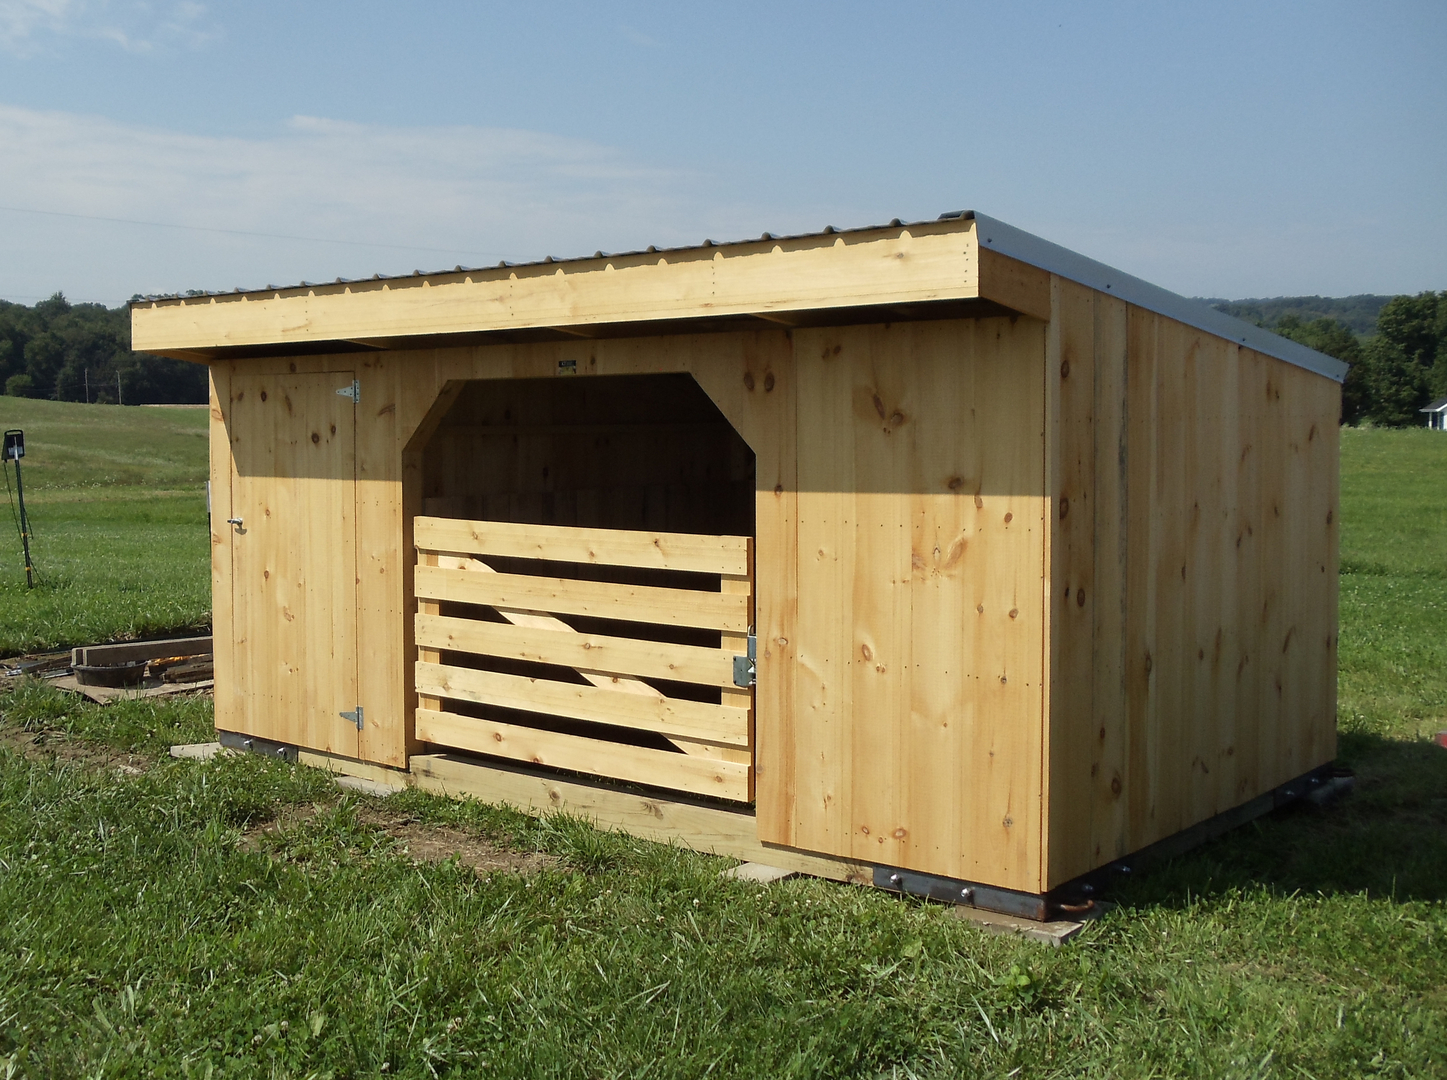 pin horse makita barn in and shed pinterest by lori on stables farms kits discover about run ideas sheds